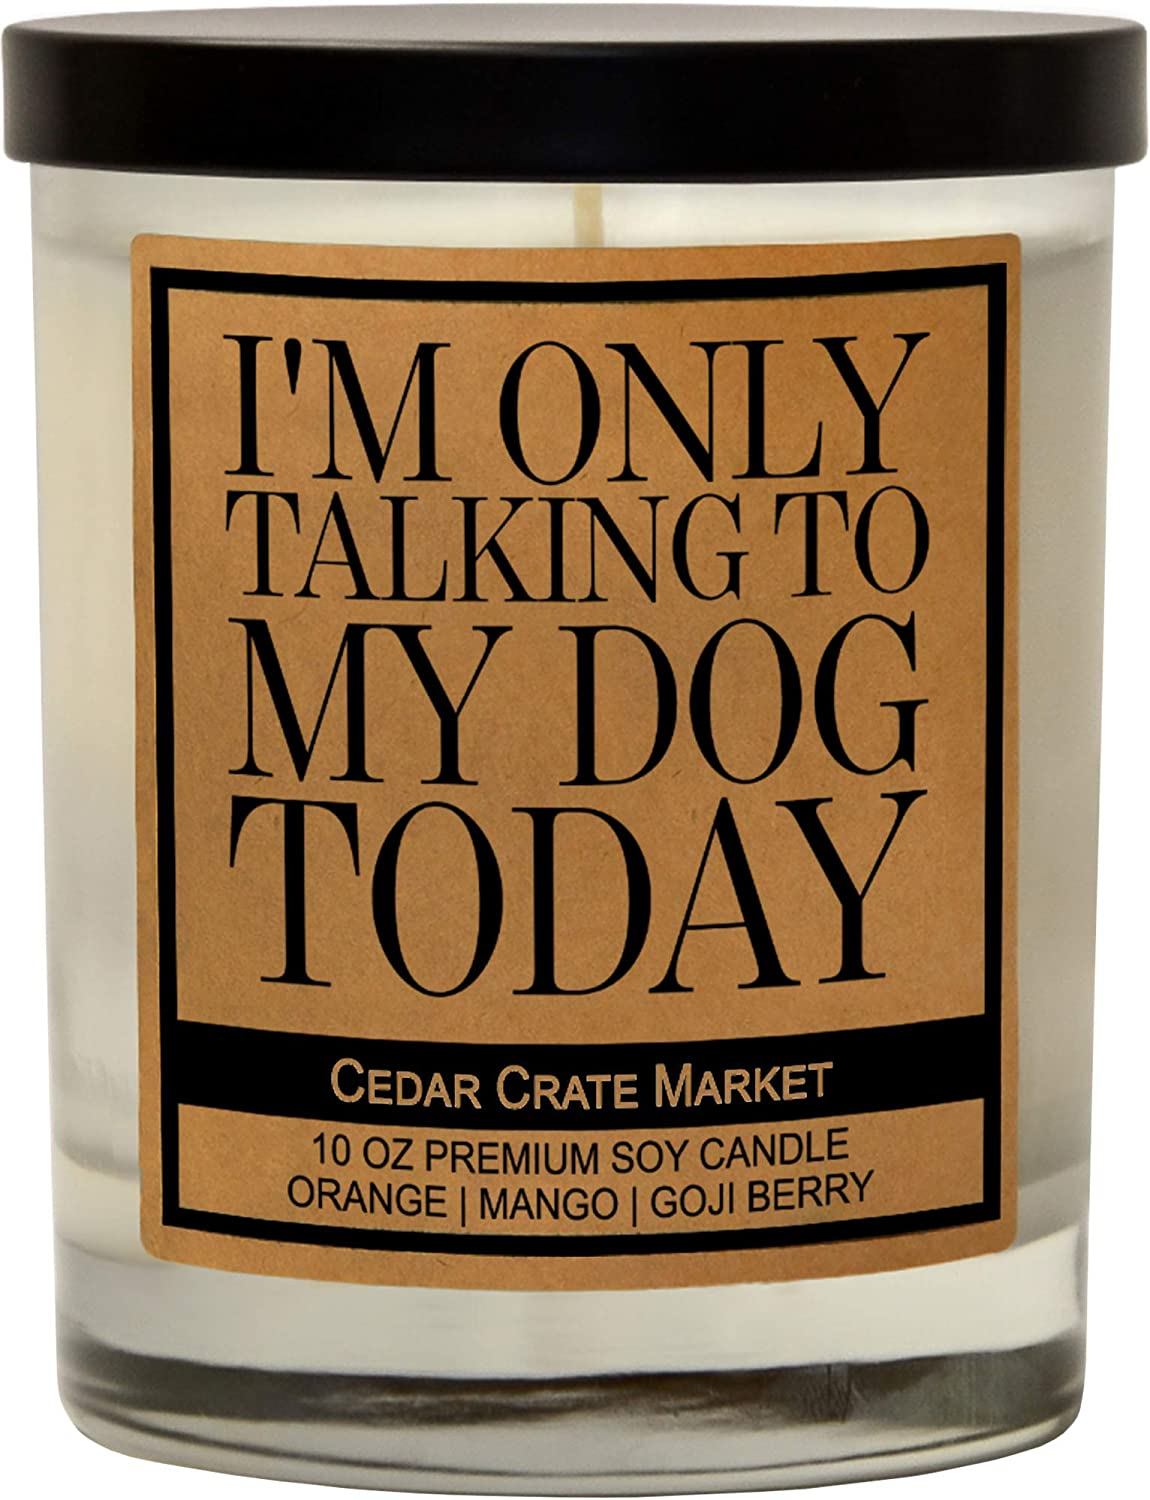 I'm Only Talking to My Dog Today - Funny Dog Candles Gifts for Women, Men, Dog Lovers, Pet Candle for Home, House, Dog Mom Gifts, Pet Mom,Fur Mamas, Dog Dads, Foster, Rescue, Adoption Pet Families